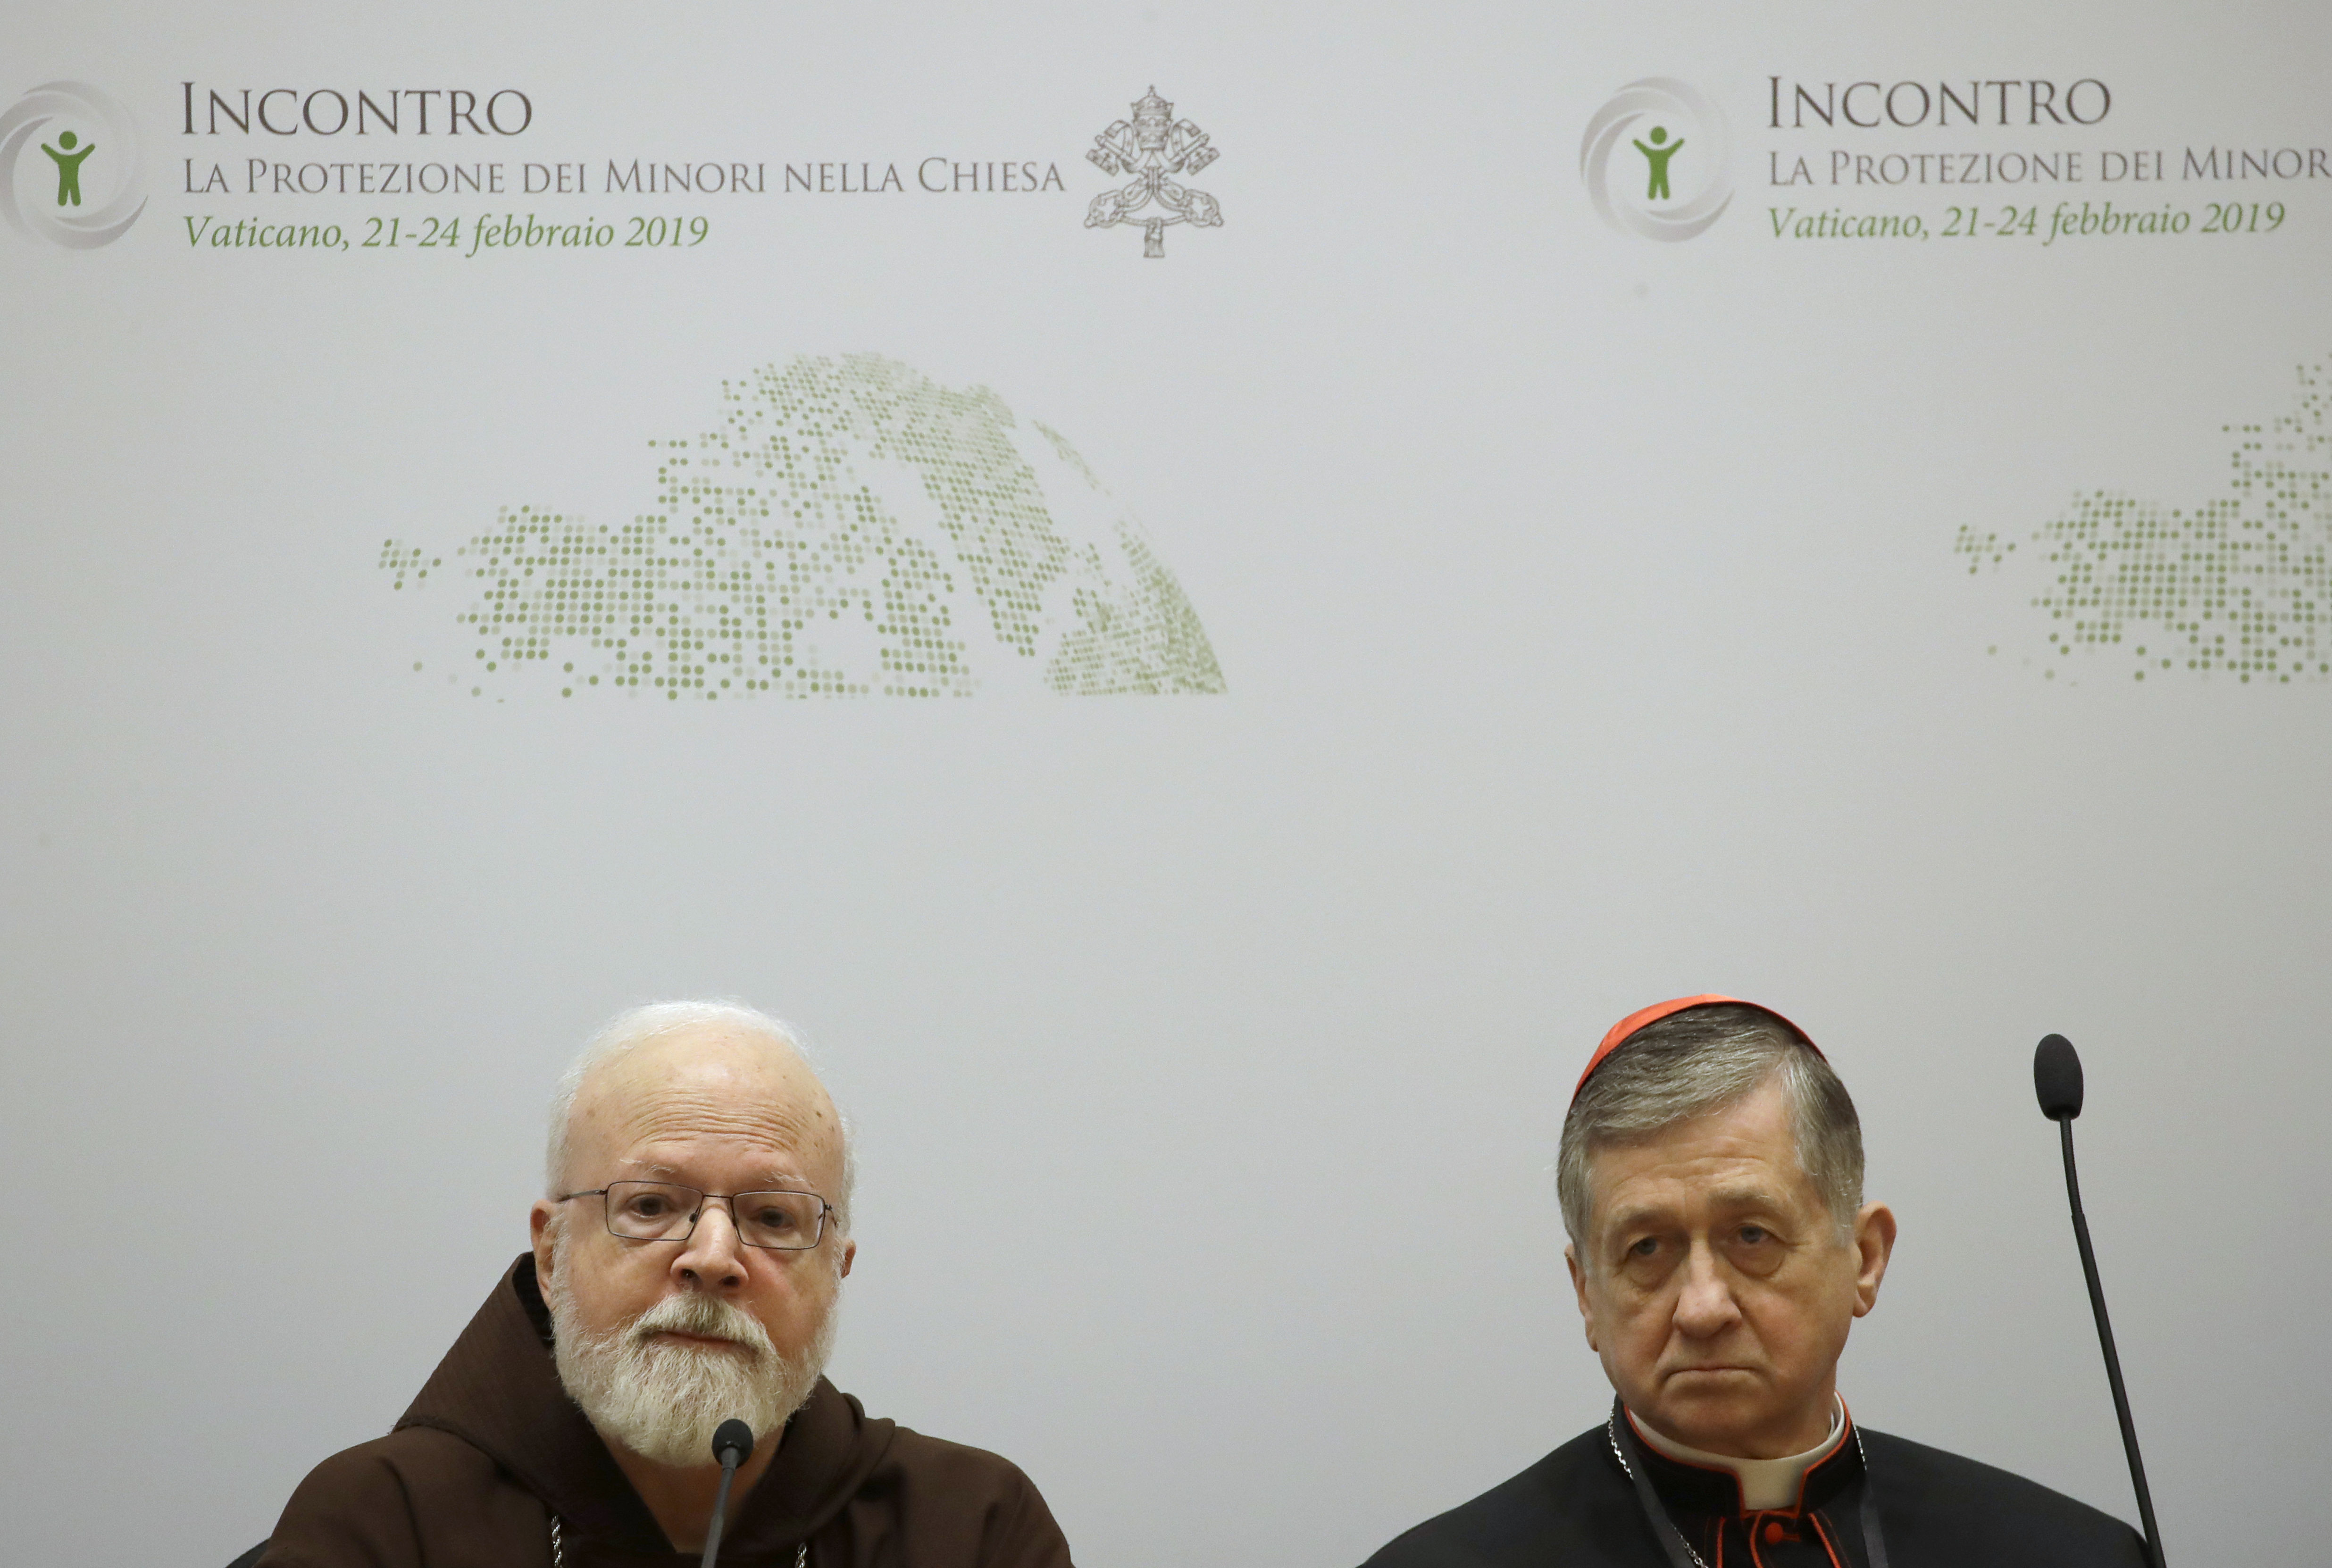 Cardinal Blase J. Cupich, Chicago Archbishop, right, and Cardinal Sean Patrick O'Malley, listen to reporters' questions during a four-day sex abuse summit called by Pope Francis, in Rome, Feb. 22, 2019.